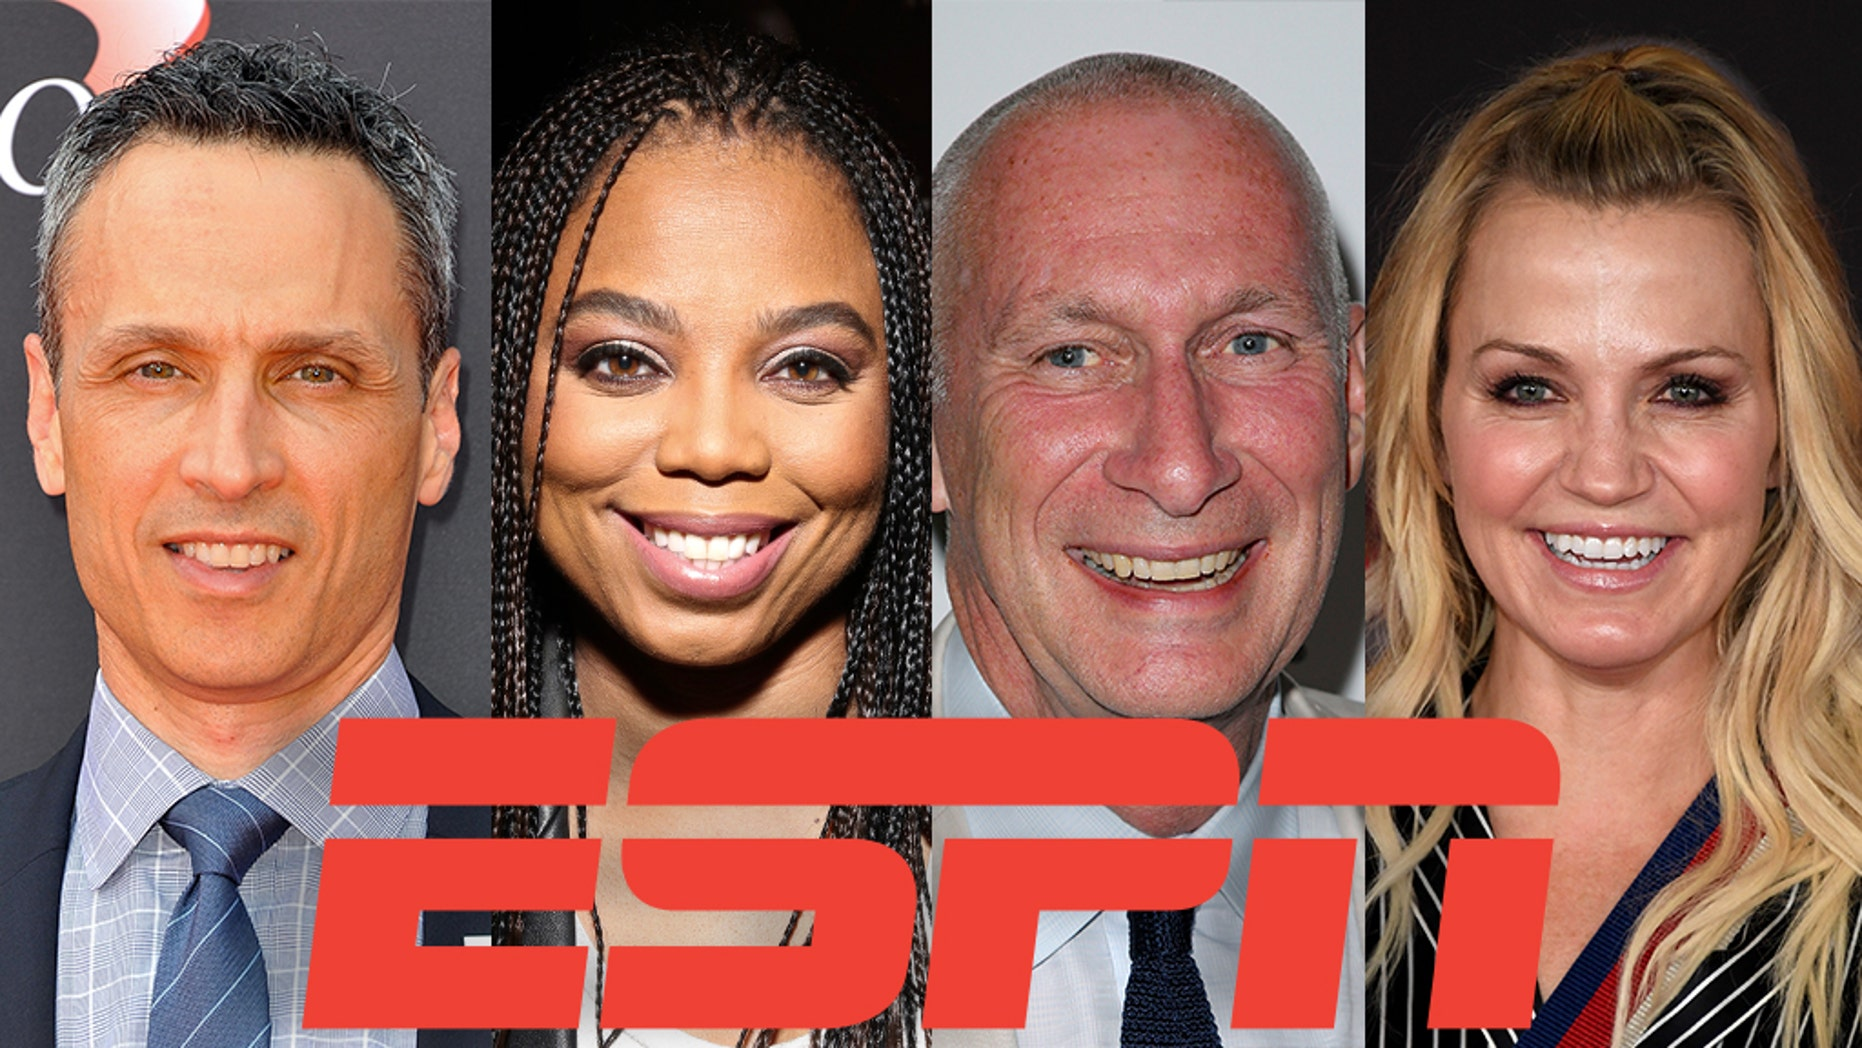 ESPN president Jimmy Pitaro understands that viewers don't want political content that was prevalent under former boss John Skipper.